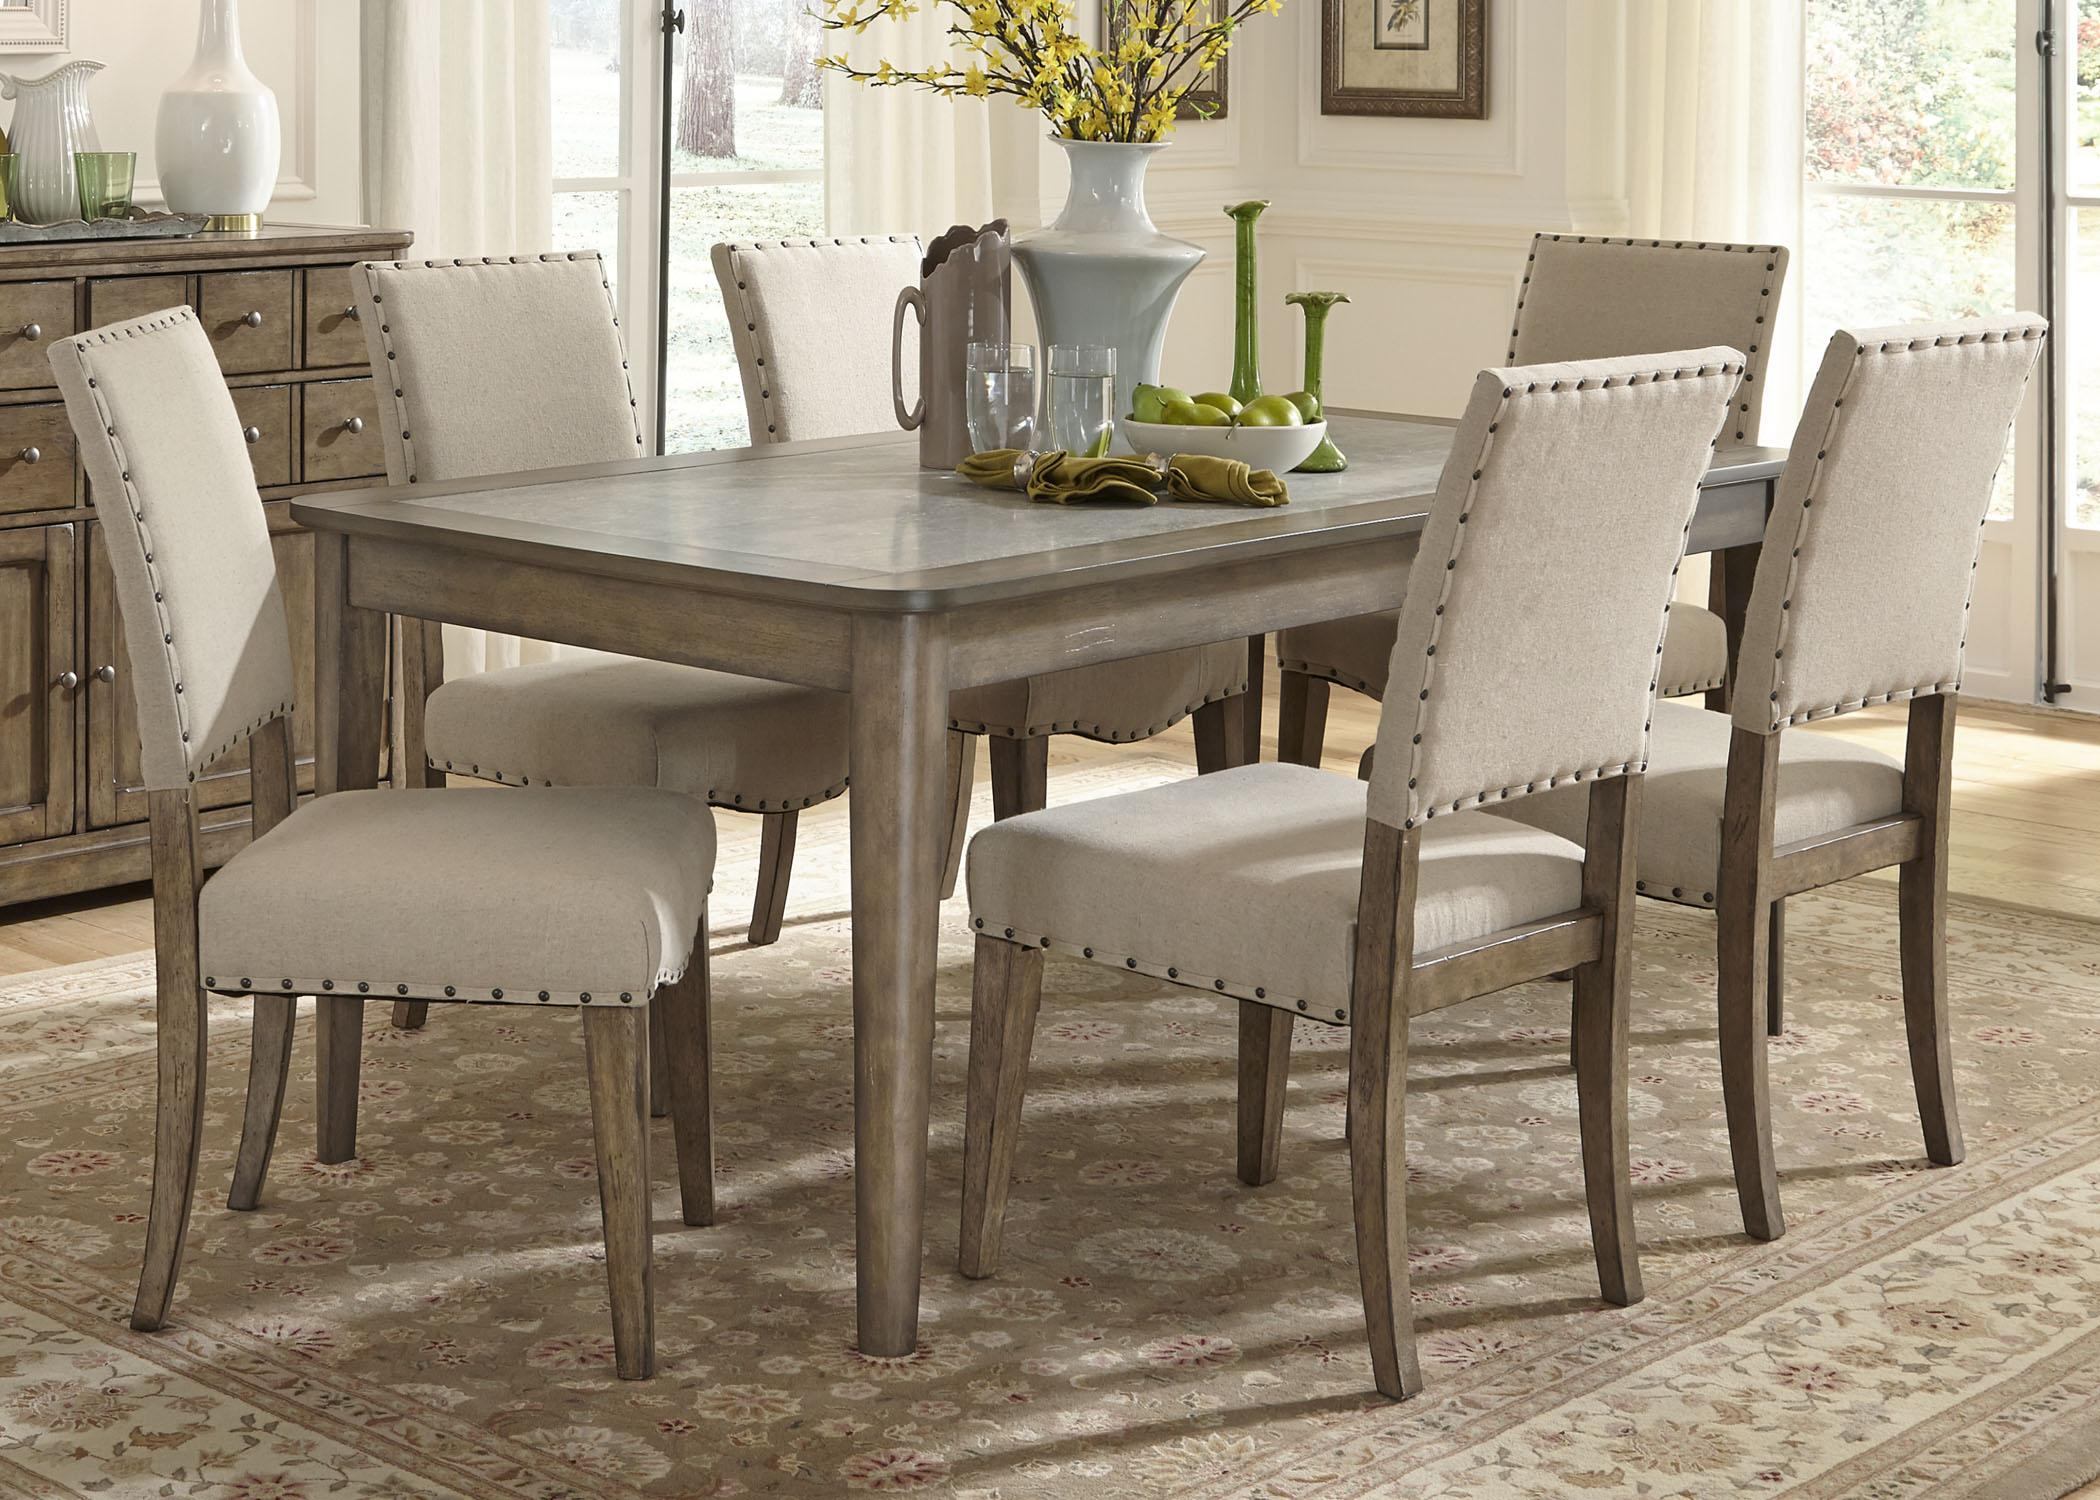 Casual rustic 7 piece dining table and chairs set by for Dining table and chairs